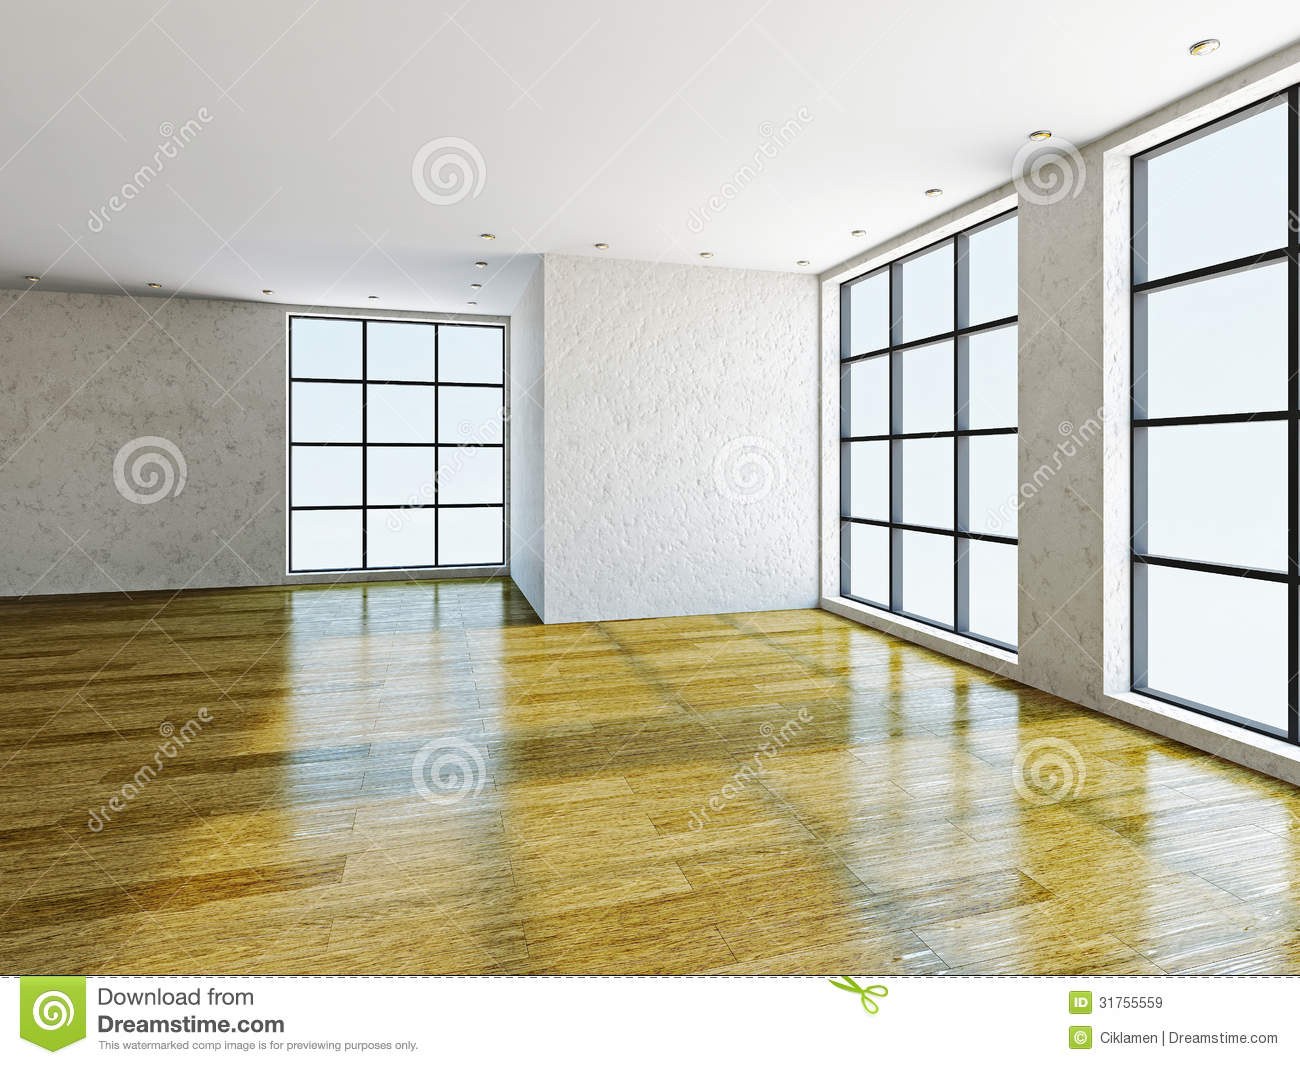 Empty Room With Windows Royalty Free Stock Images - Image